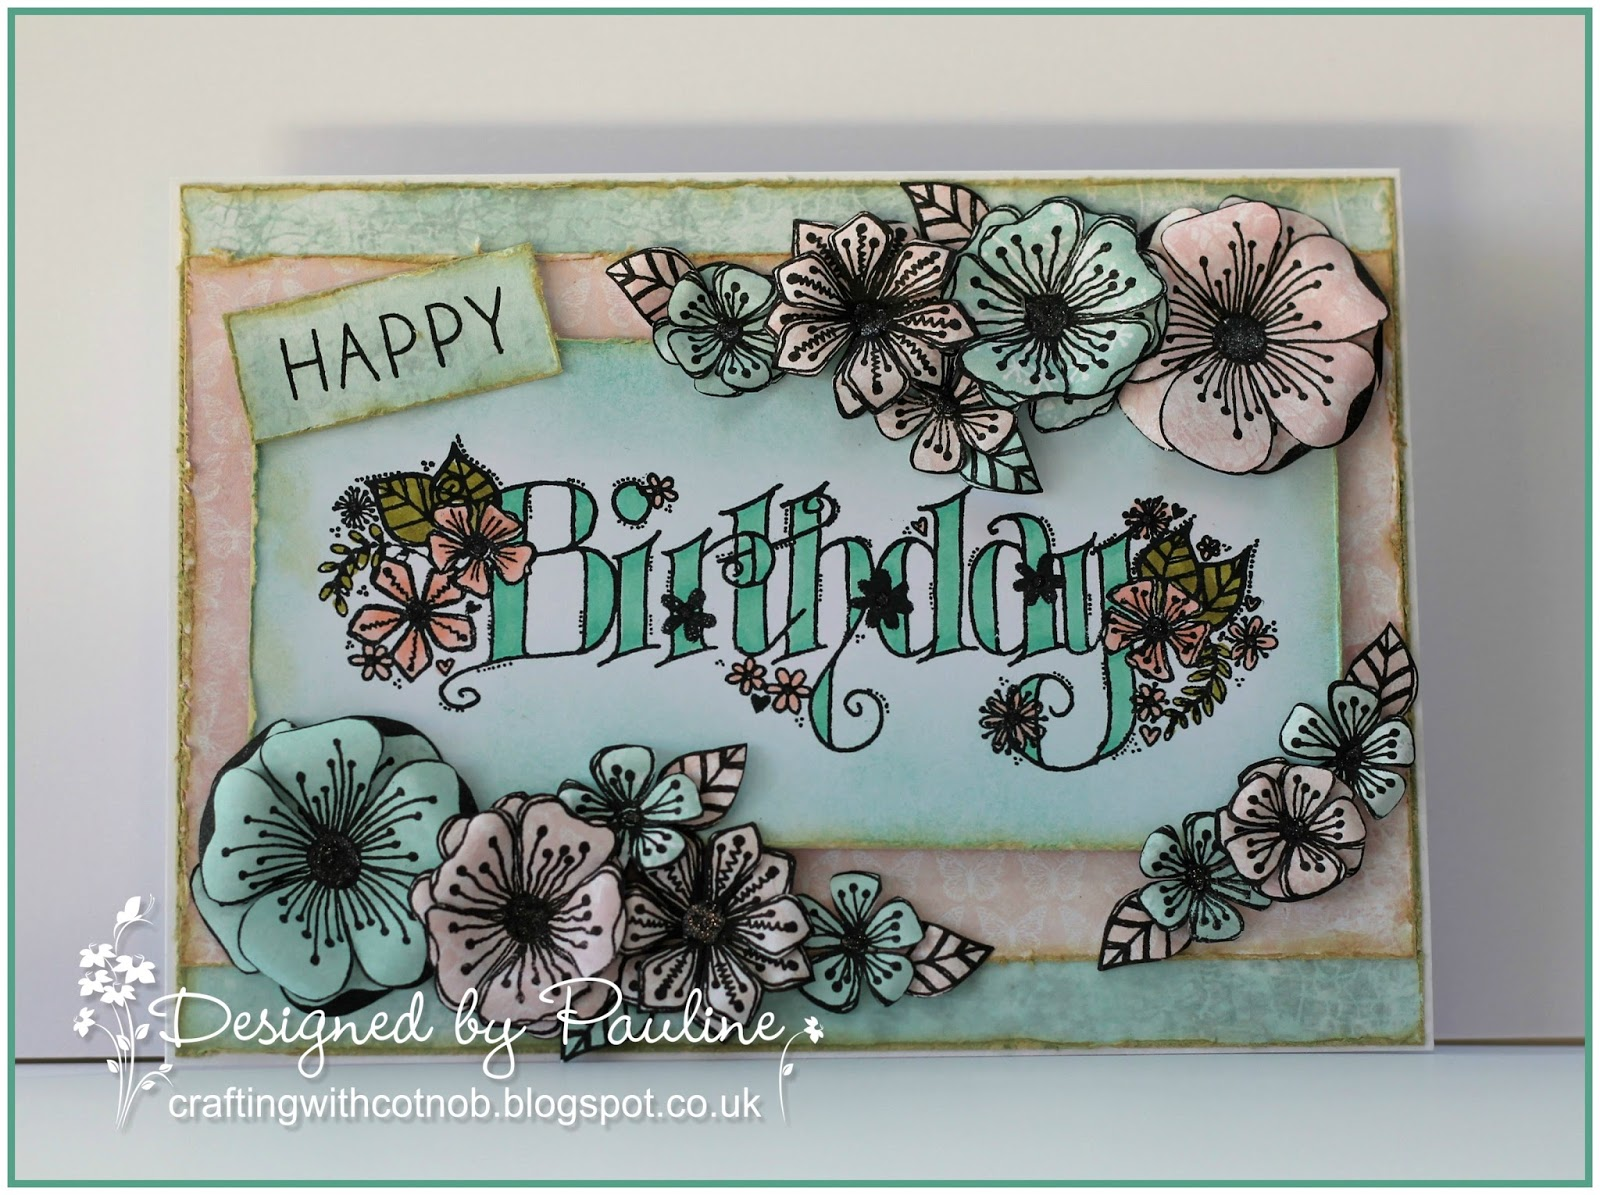 Crafting with cotnob birthday flowers i used papers from the vintage dreams paper pad and coloured the stamp with my spectrum noir illustrator pens i lightly distressed the edges of everything izmirmasajfo